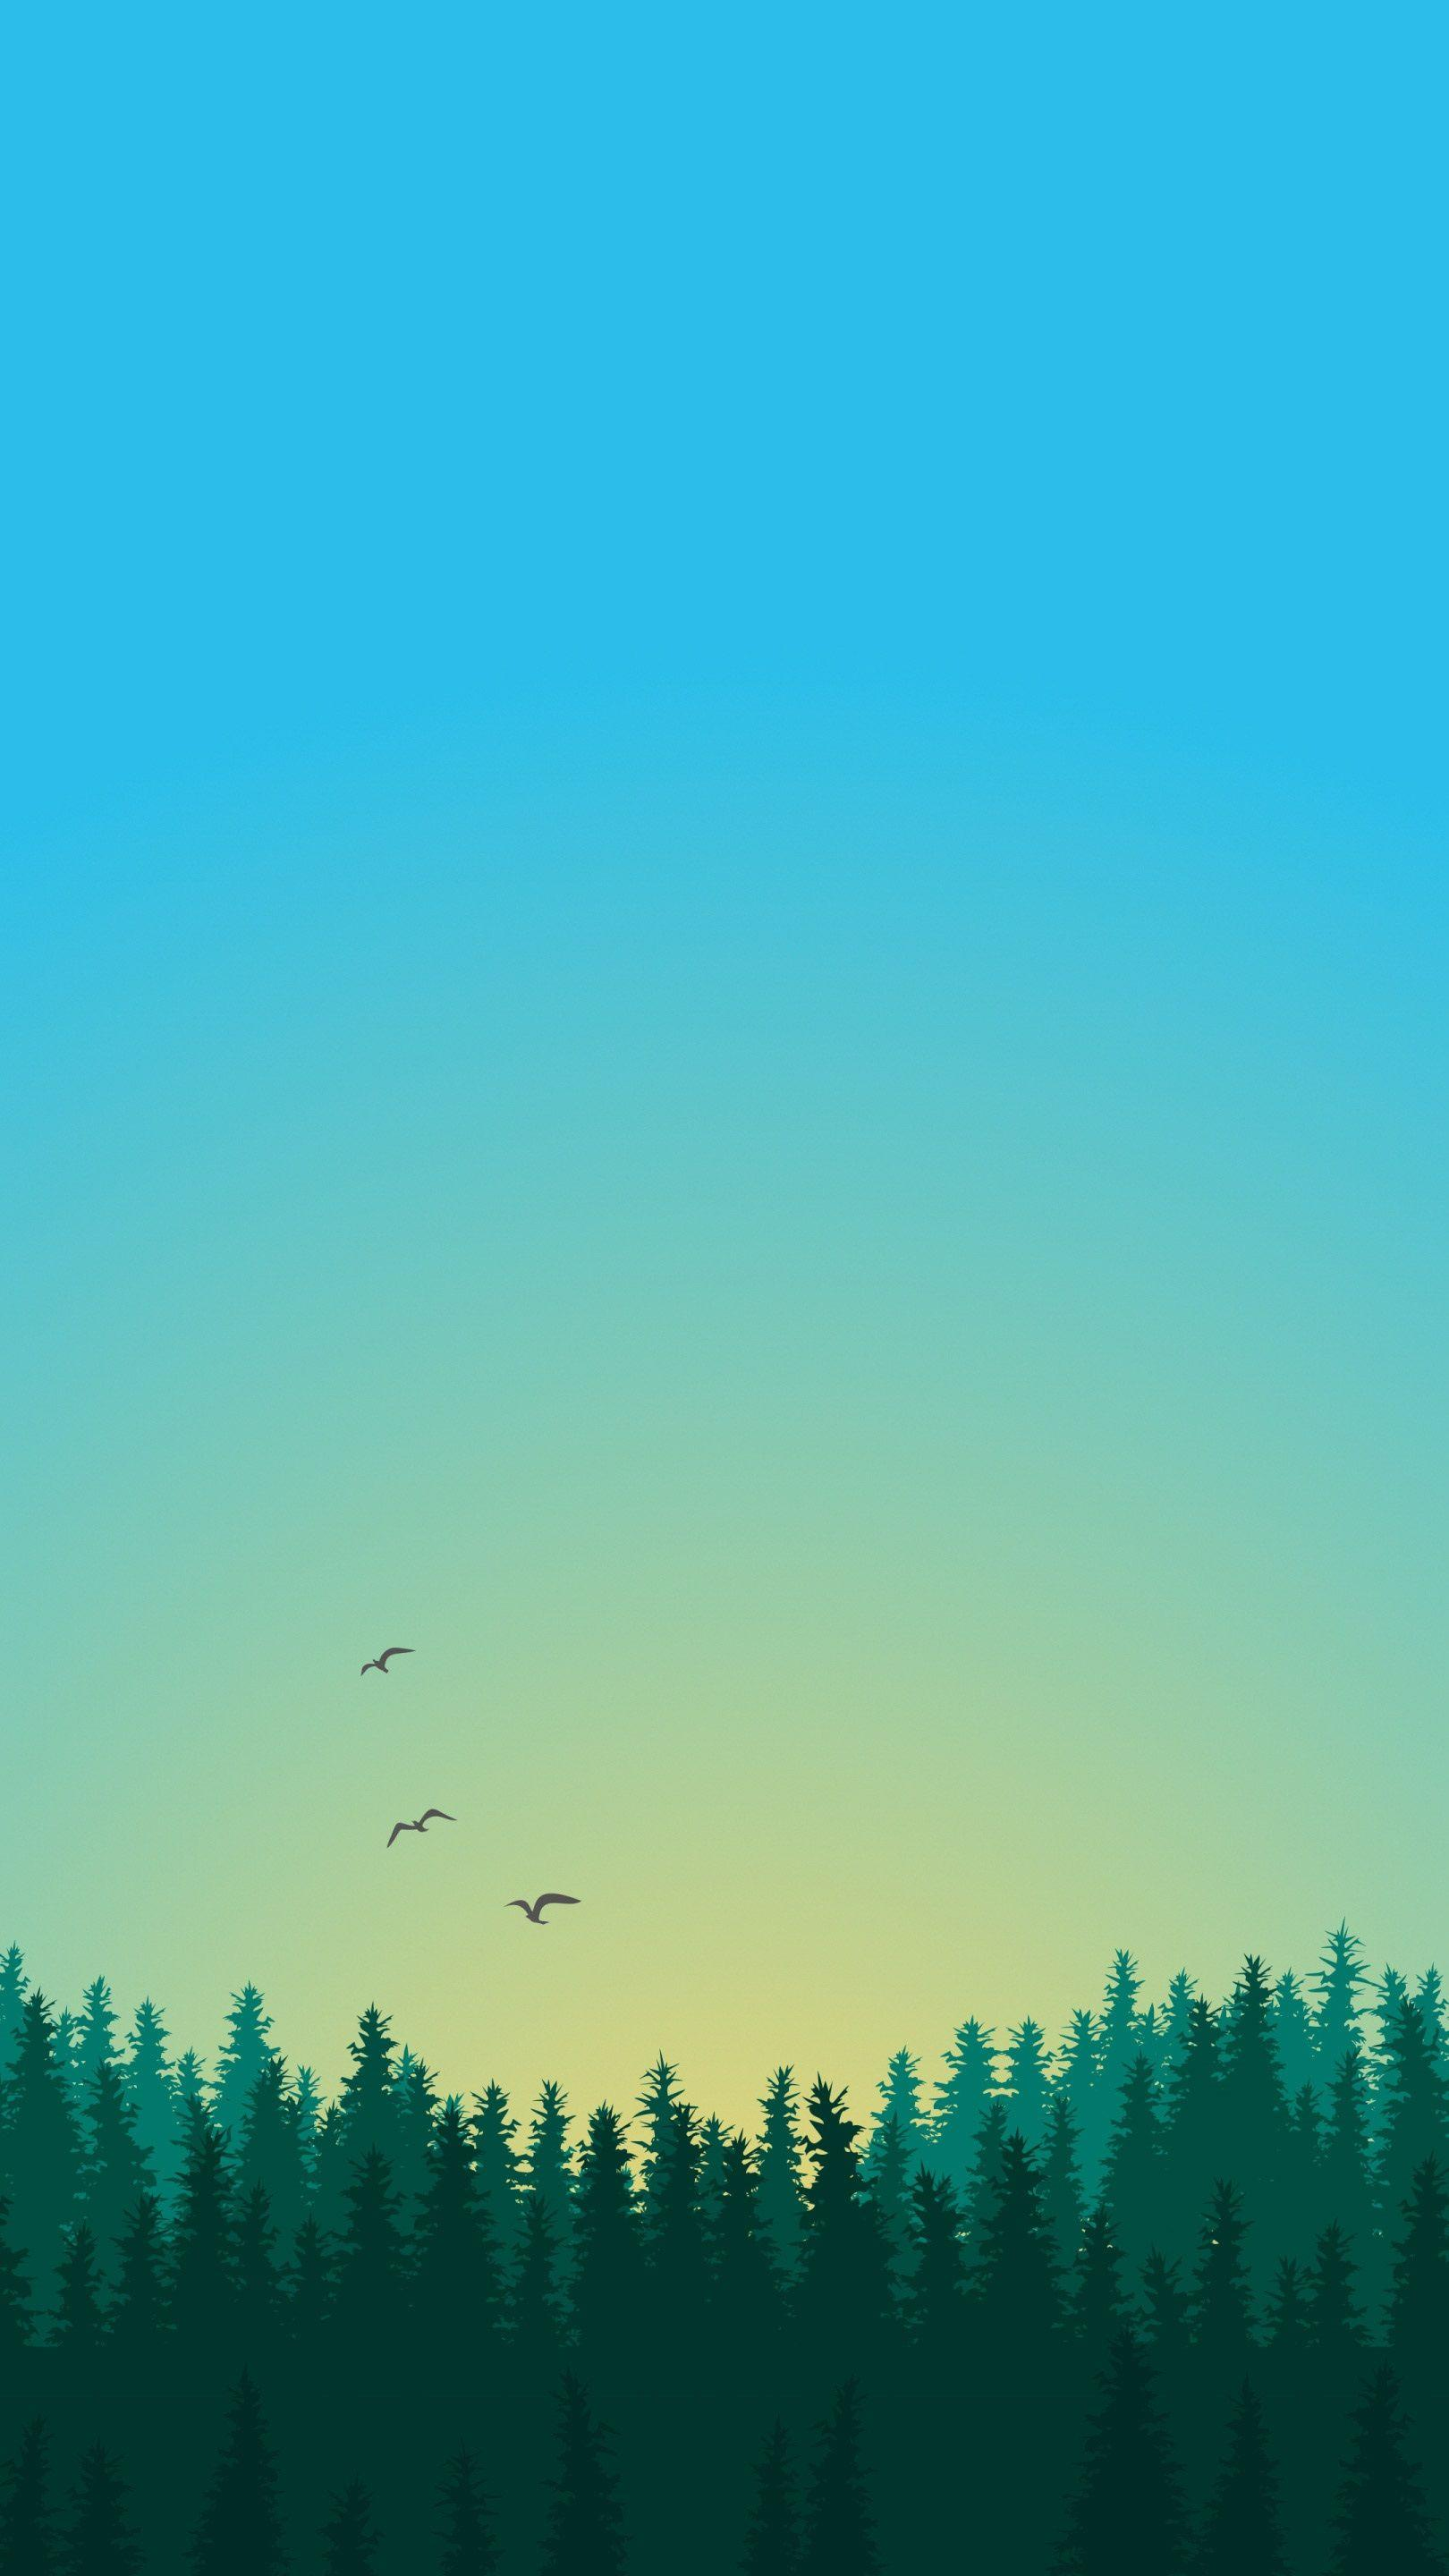 Download 34 Minimalist Wallpapers in QHD Quality